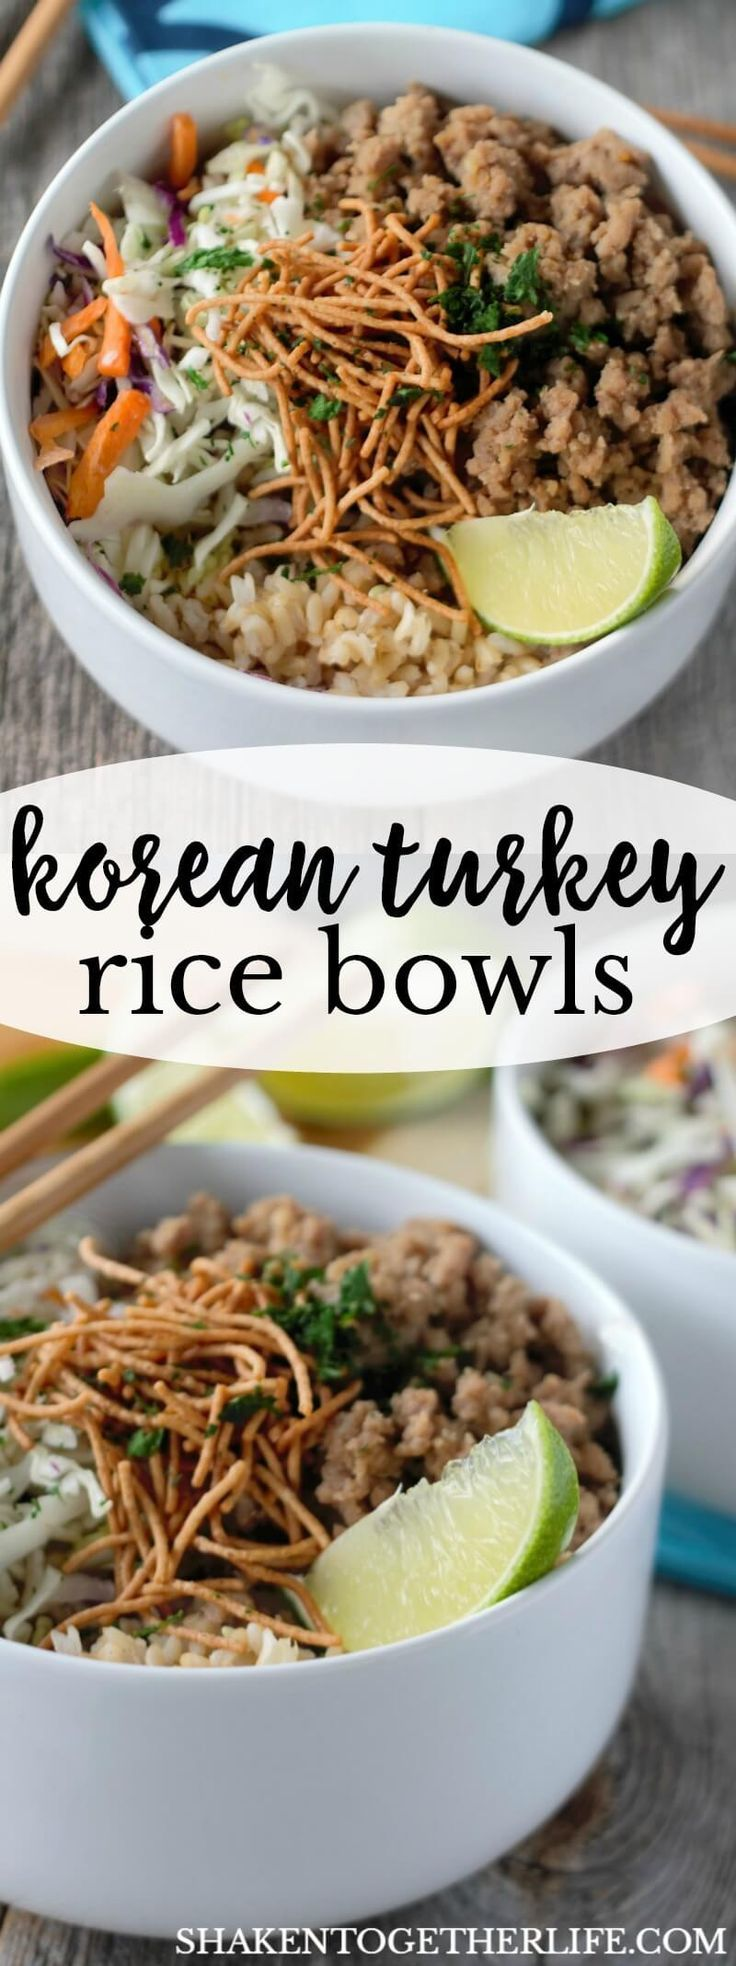 Korean Turkey Rice Bowls - a 20 minute meal! Flavorful seasoned ground turkey, nutty brown rice, crisp shredded veggies and crunchy noodles are tossed together in this quick and tasty dinner! #BacktoButterball #easydinner ad